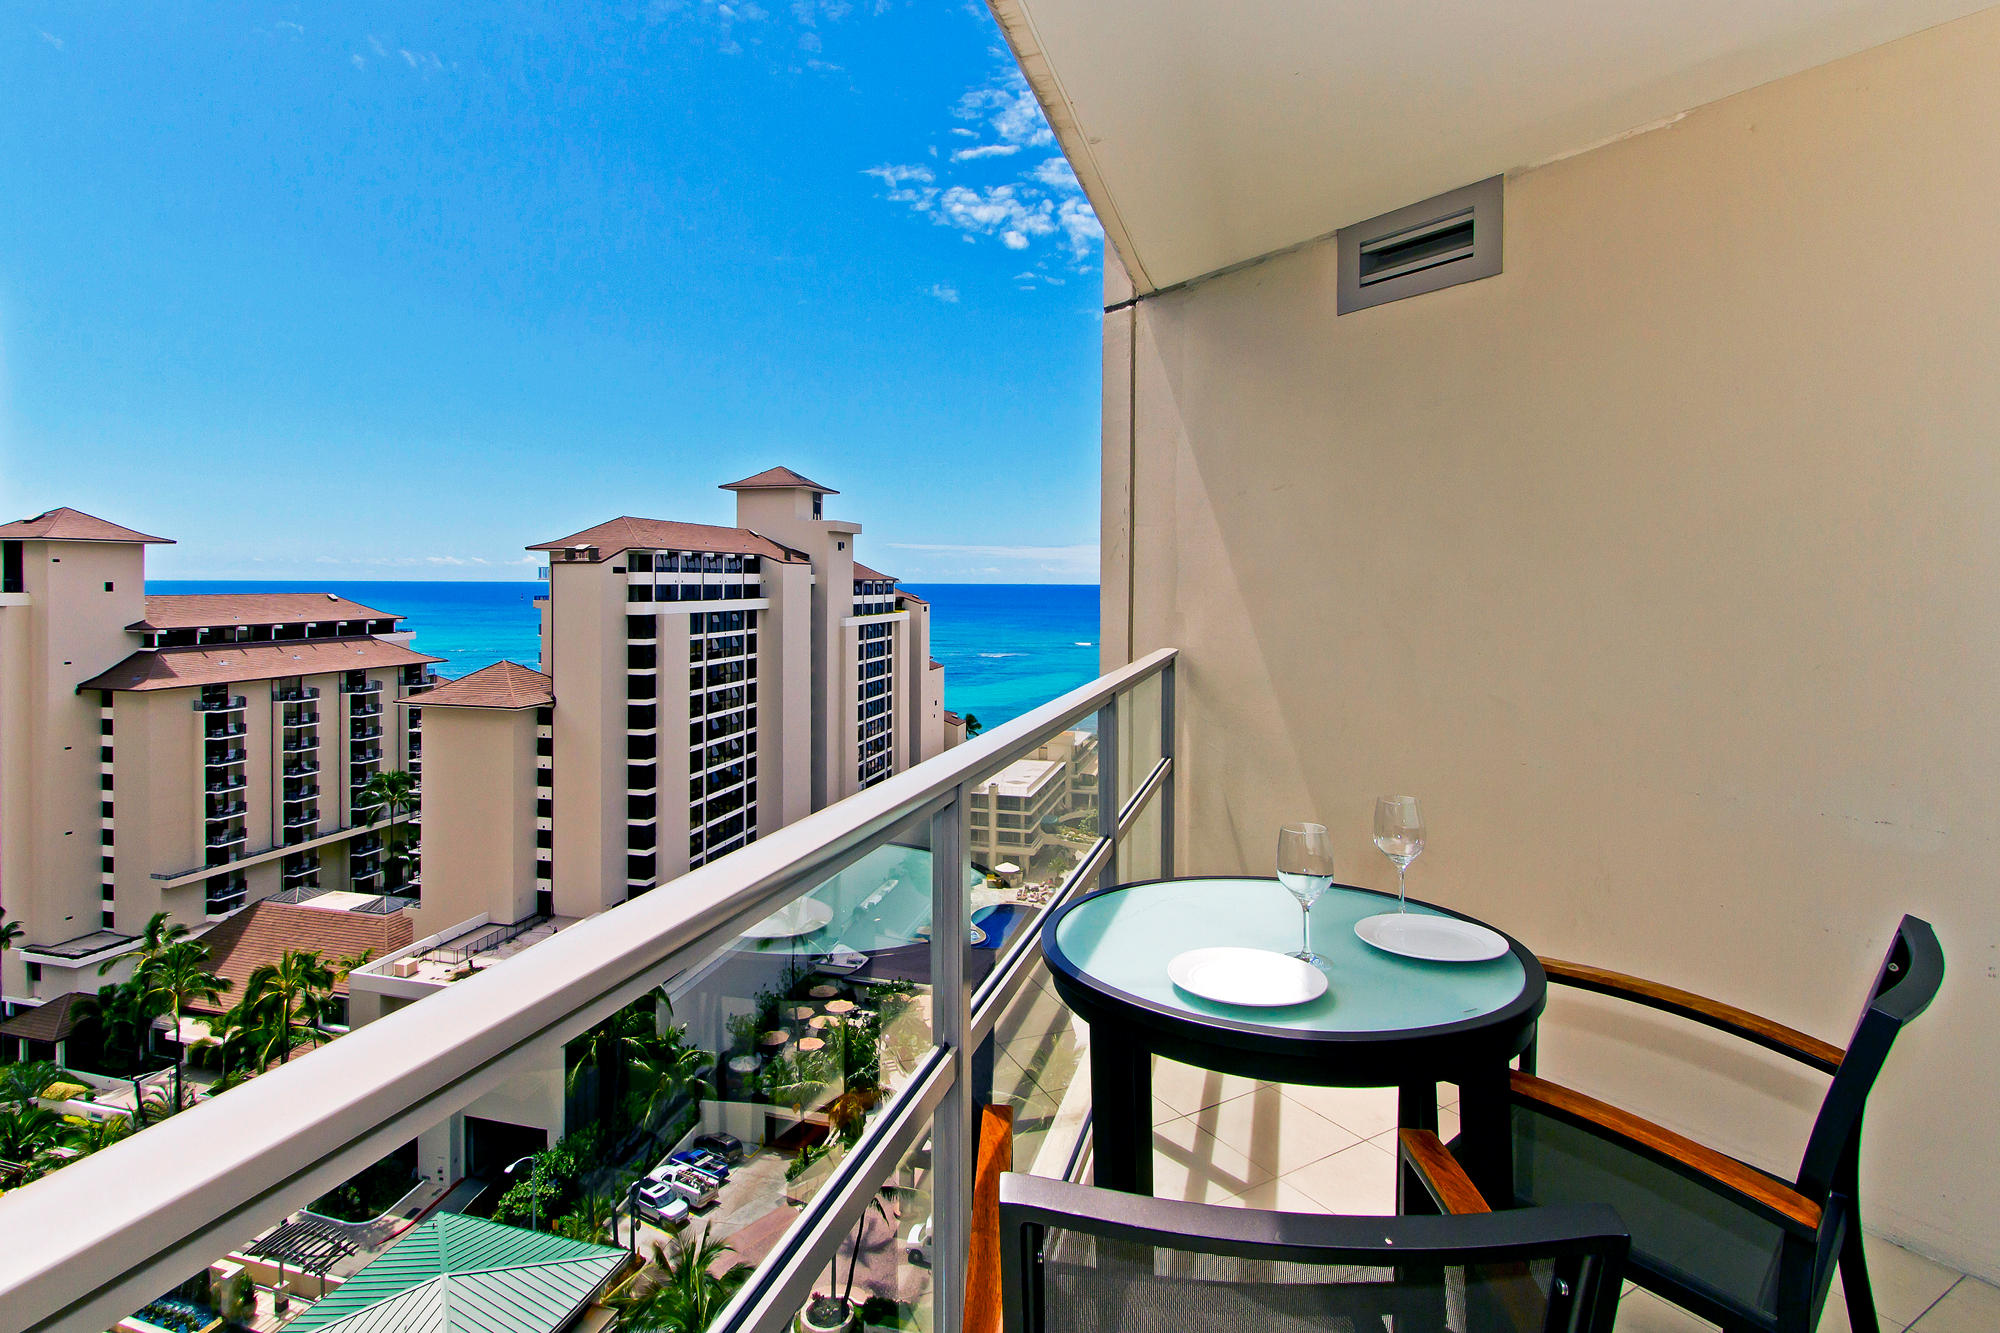 Best Trump Tower Waikiki Studio With Ocean View Hawaii Real - Hawaii architecture firms